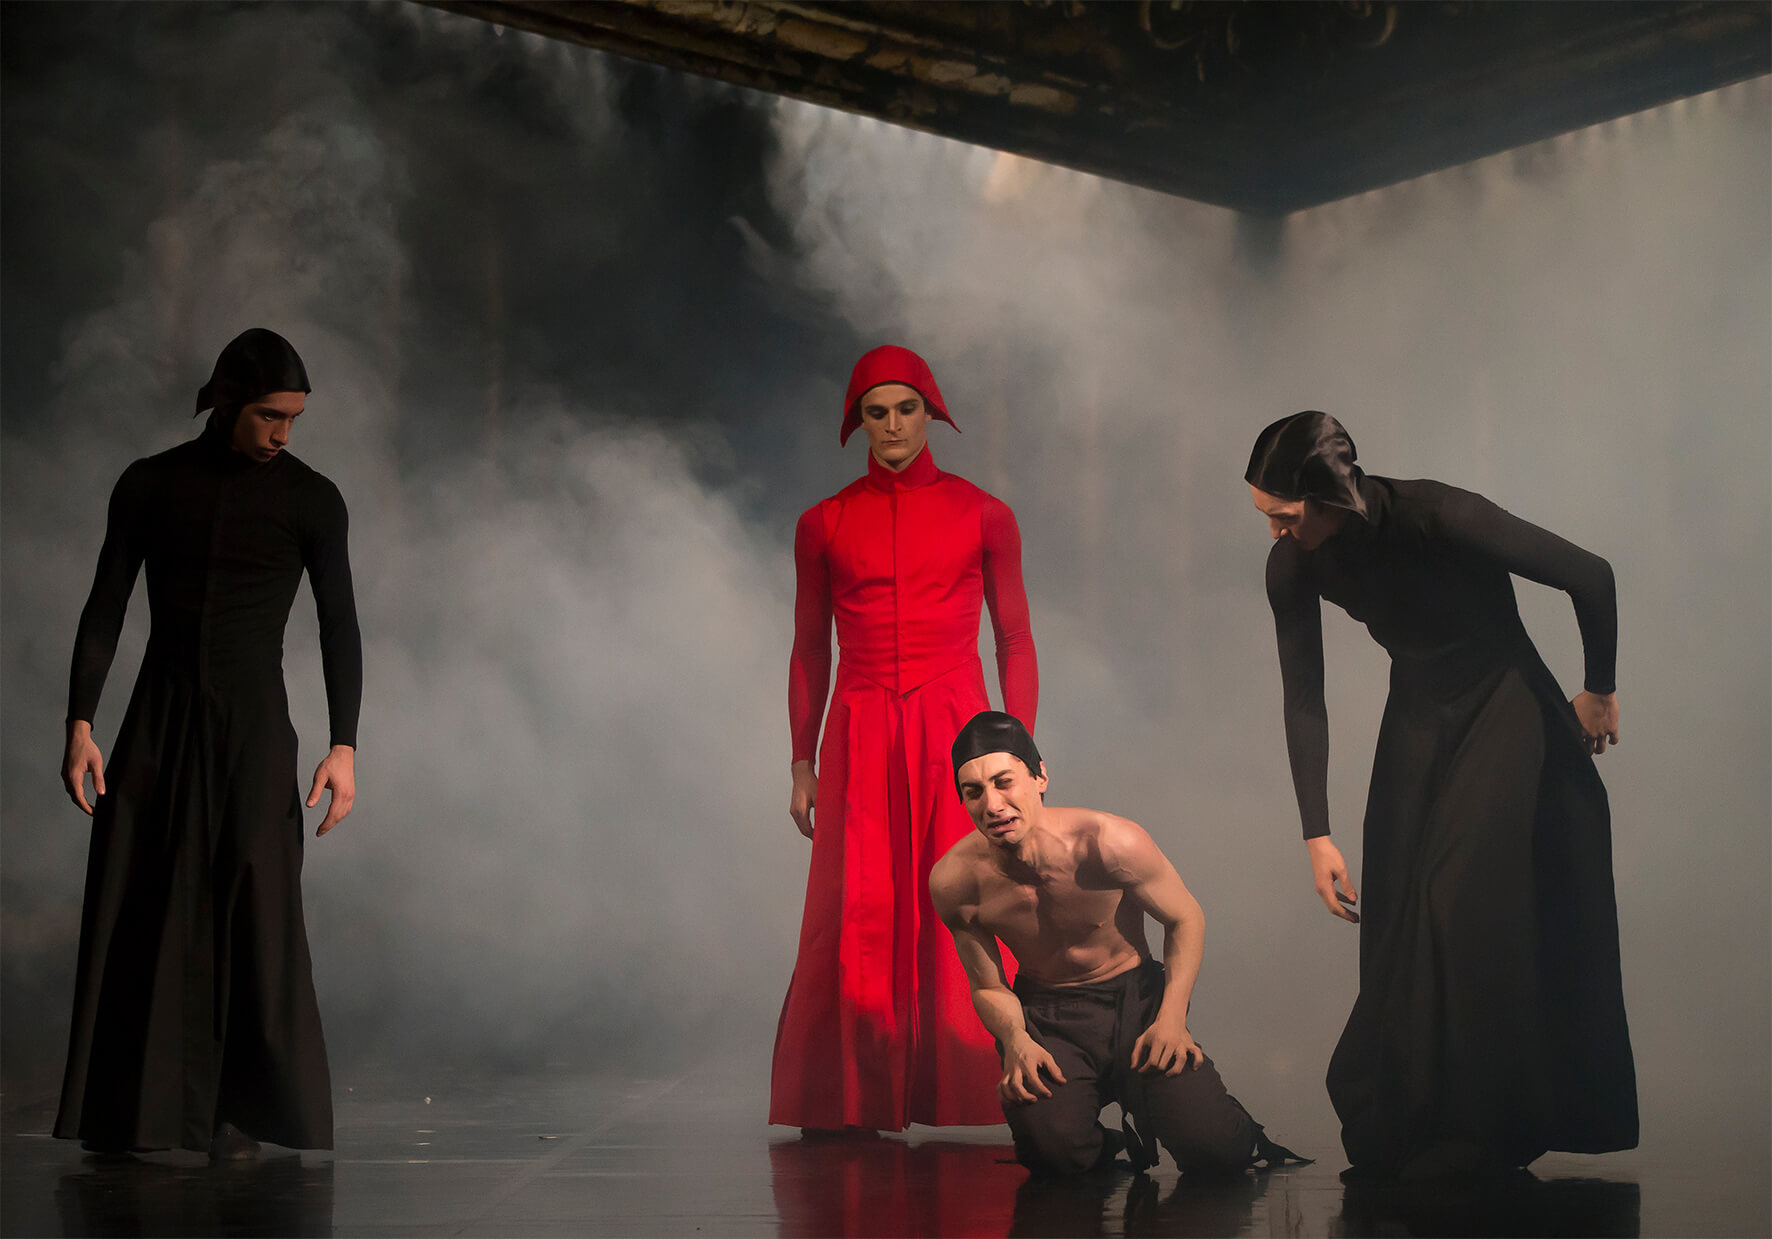 Lorenzo Trossello, Nicola Gervasi And Alexander Yap As Servants Of The Inquisition With Liam Morris As Father Balbi In Casanova. Photo Emma Kauldhar